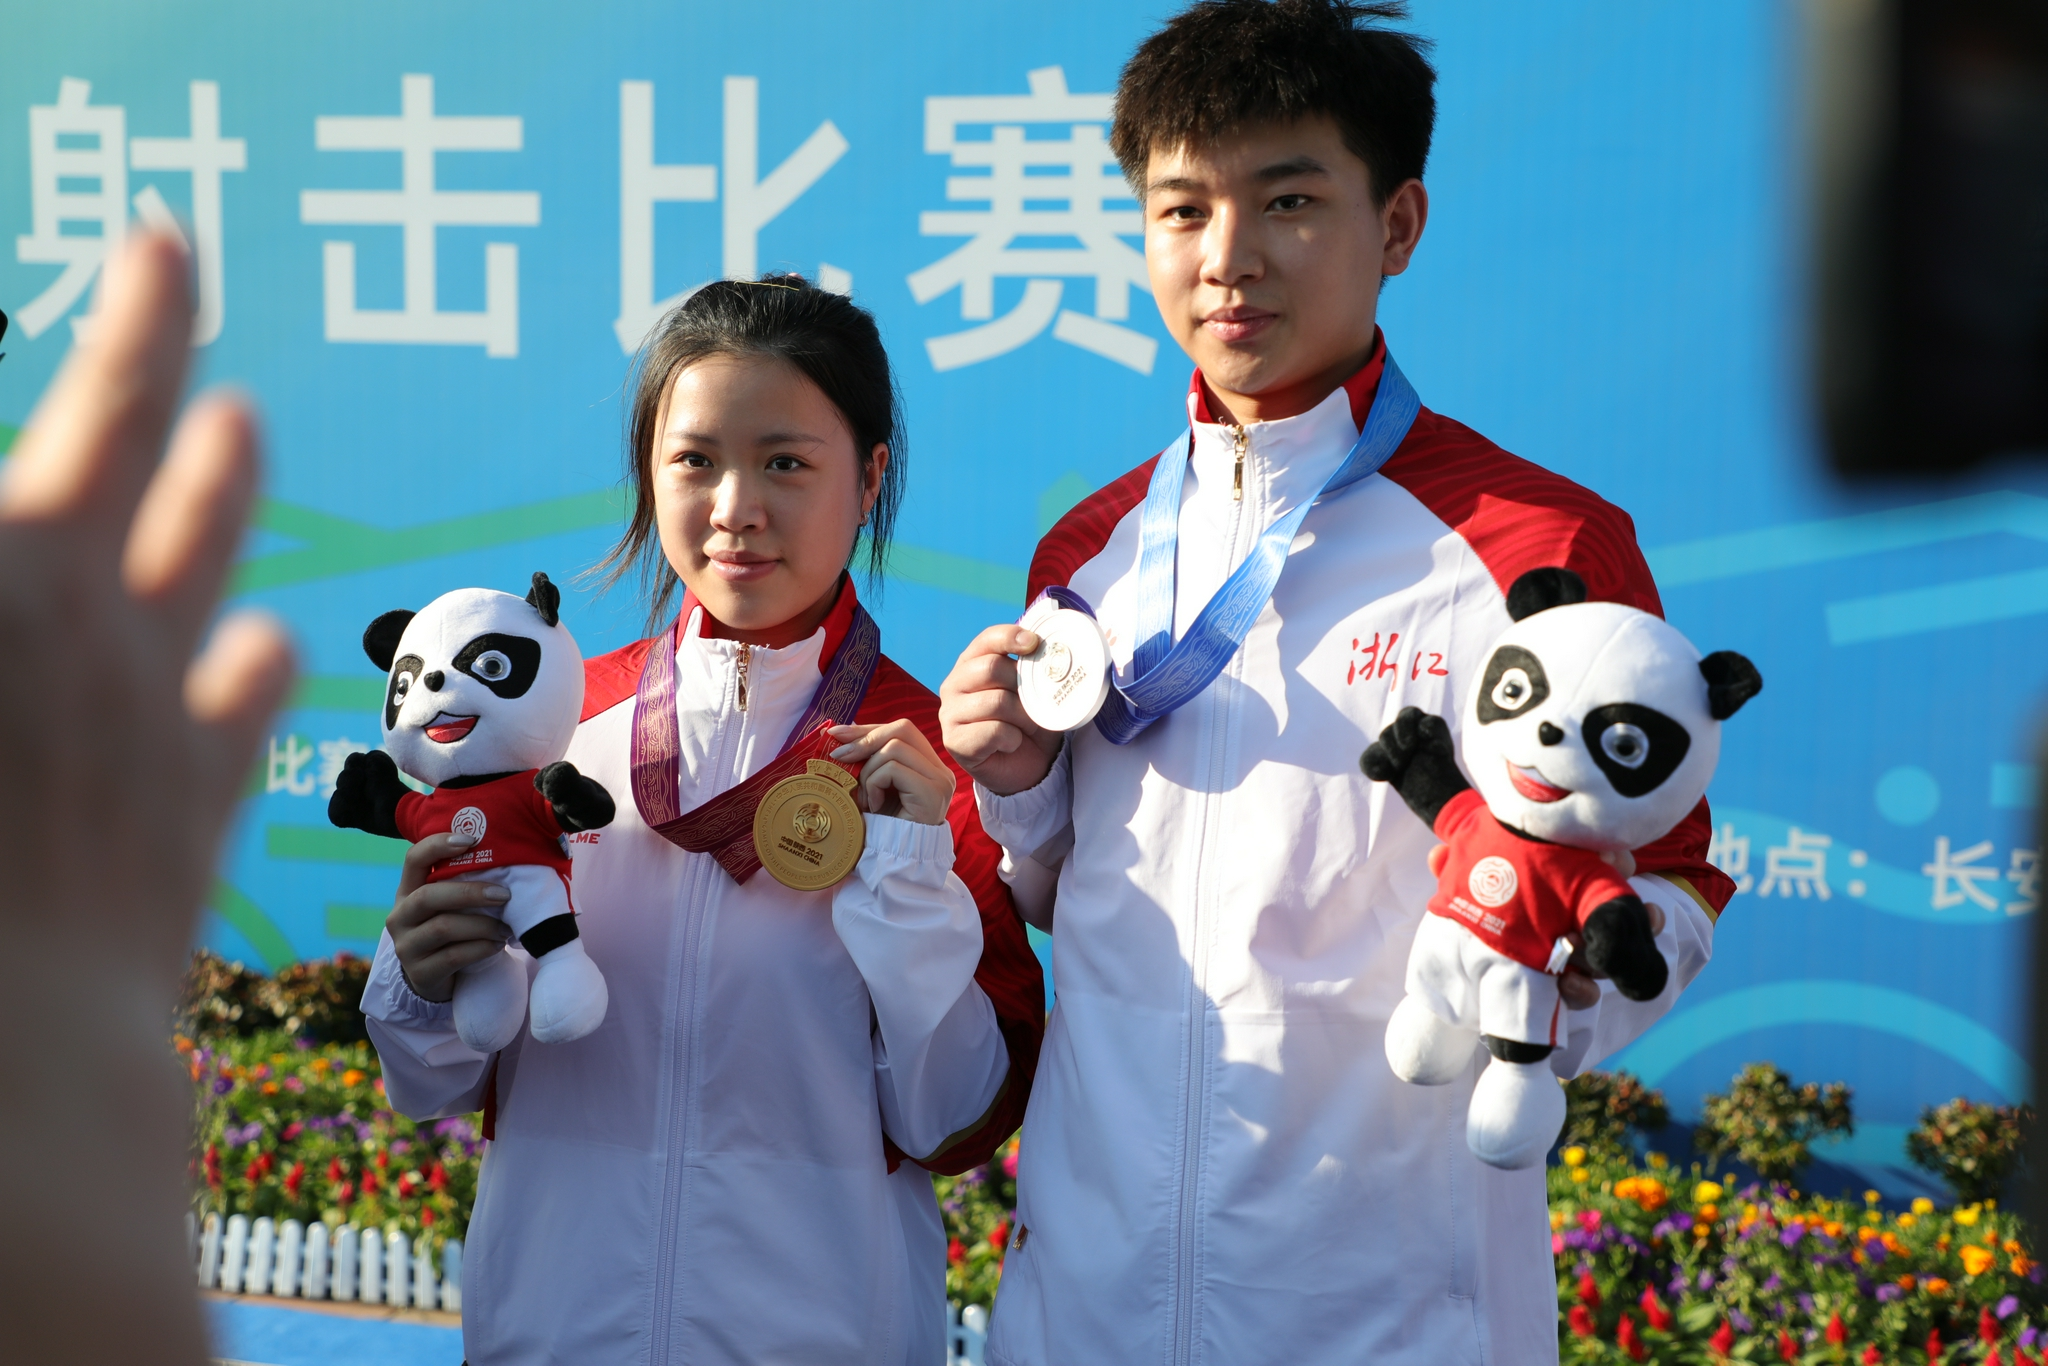 The combination of Yang Qian and Yang Haoran won gold in the National Games.